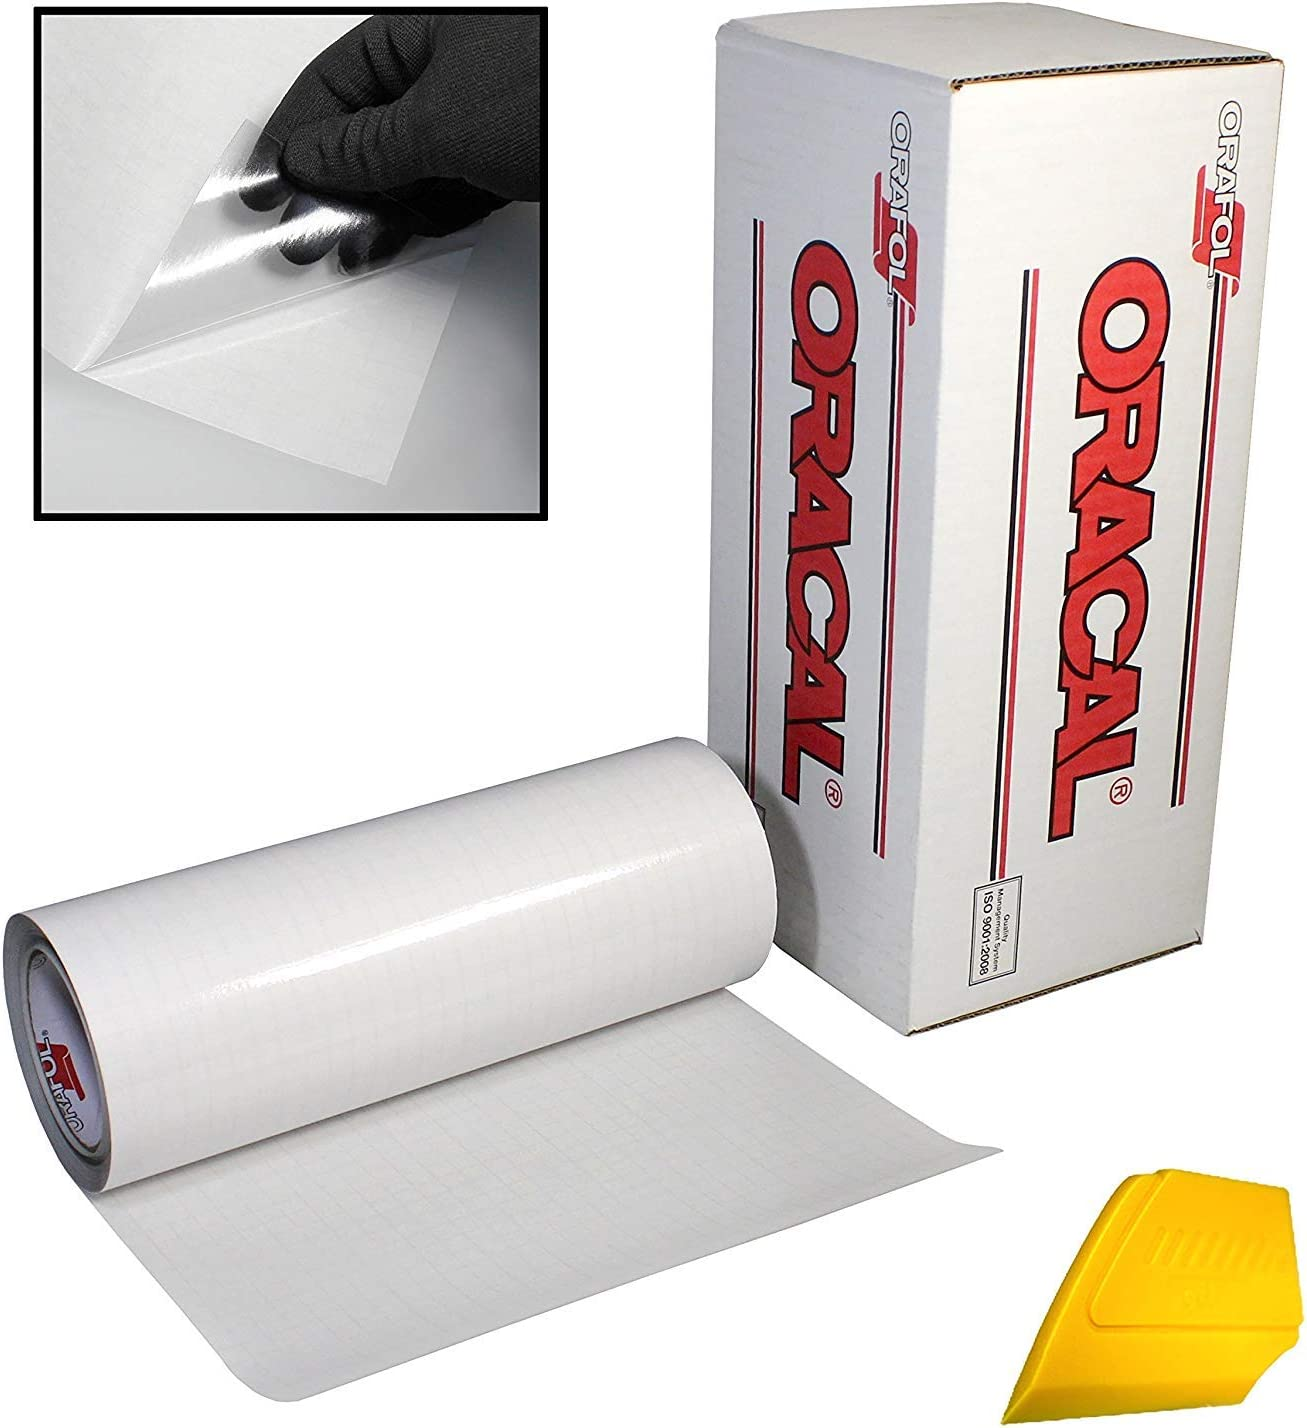 12 x 6ft Stencil Film ORAMASK 813 by Oracal Bonus 1 3.8 Maple Leaf Permanent Decal